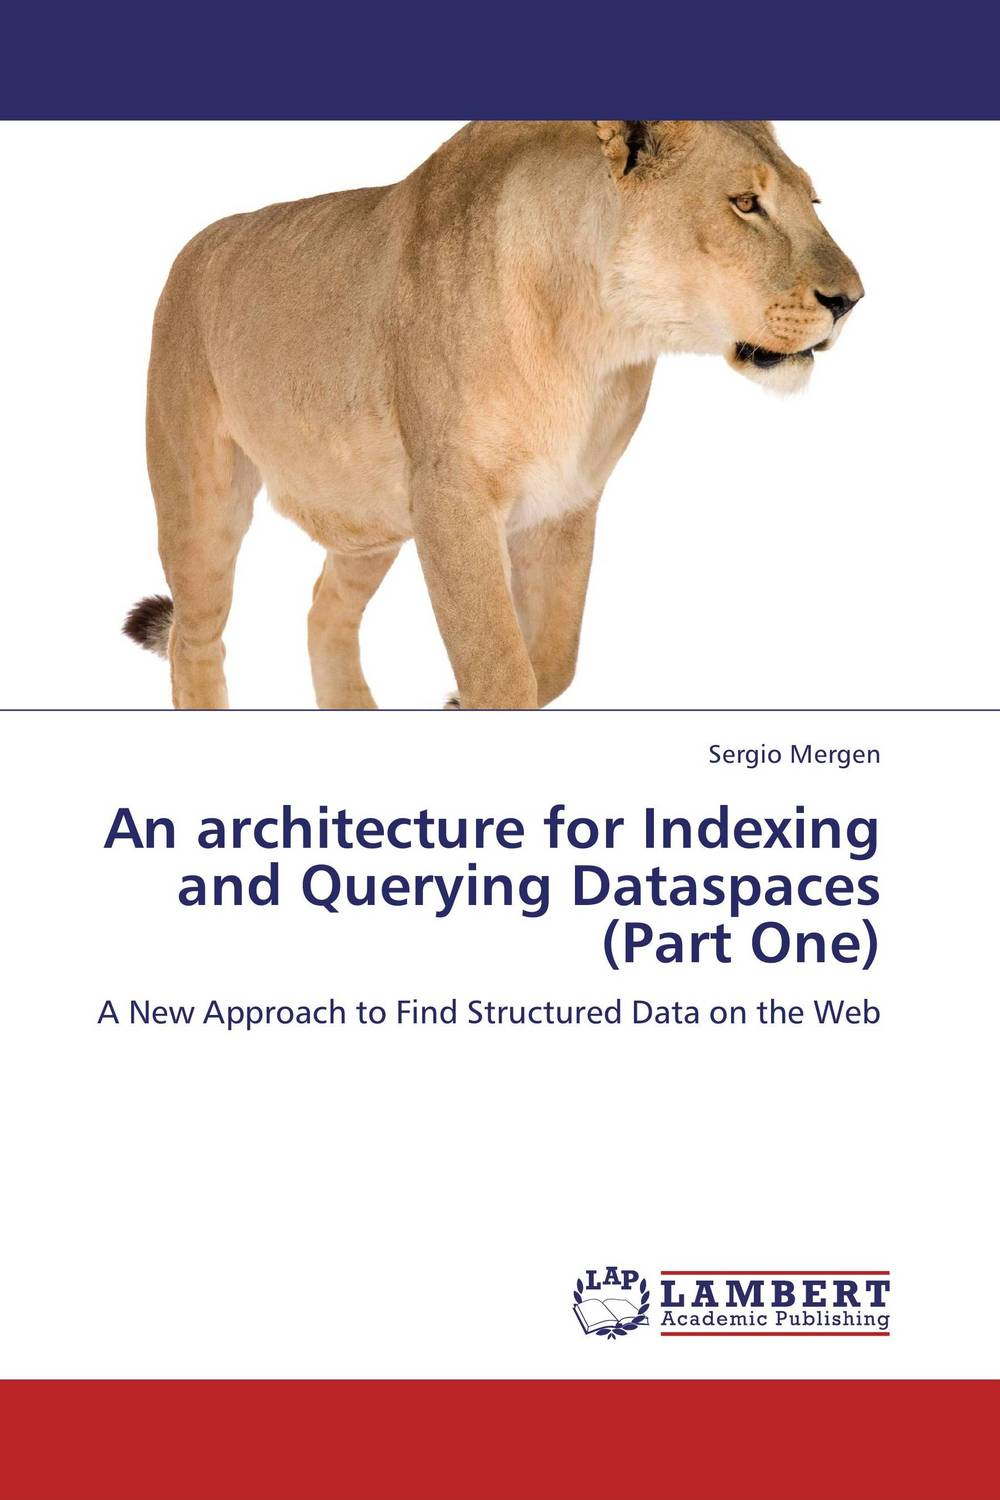 An architecture for Indexing and Querying Dataspaces (Part One) querying xml